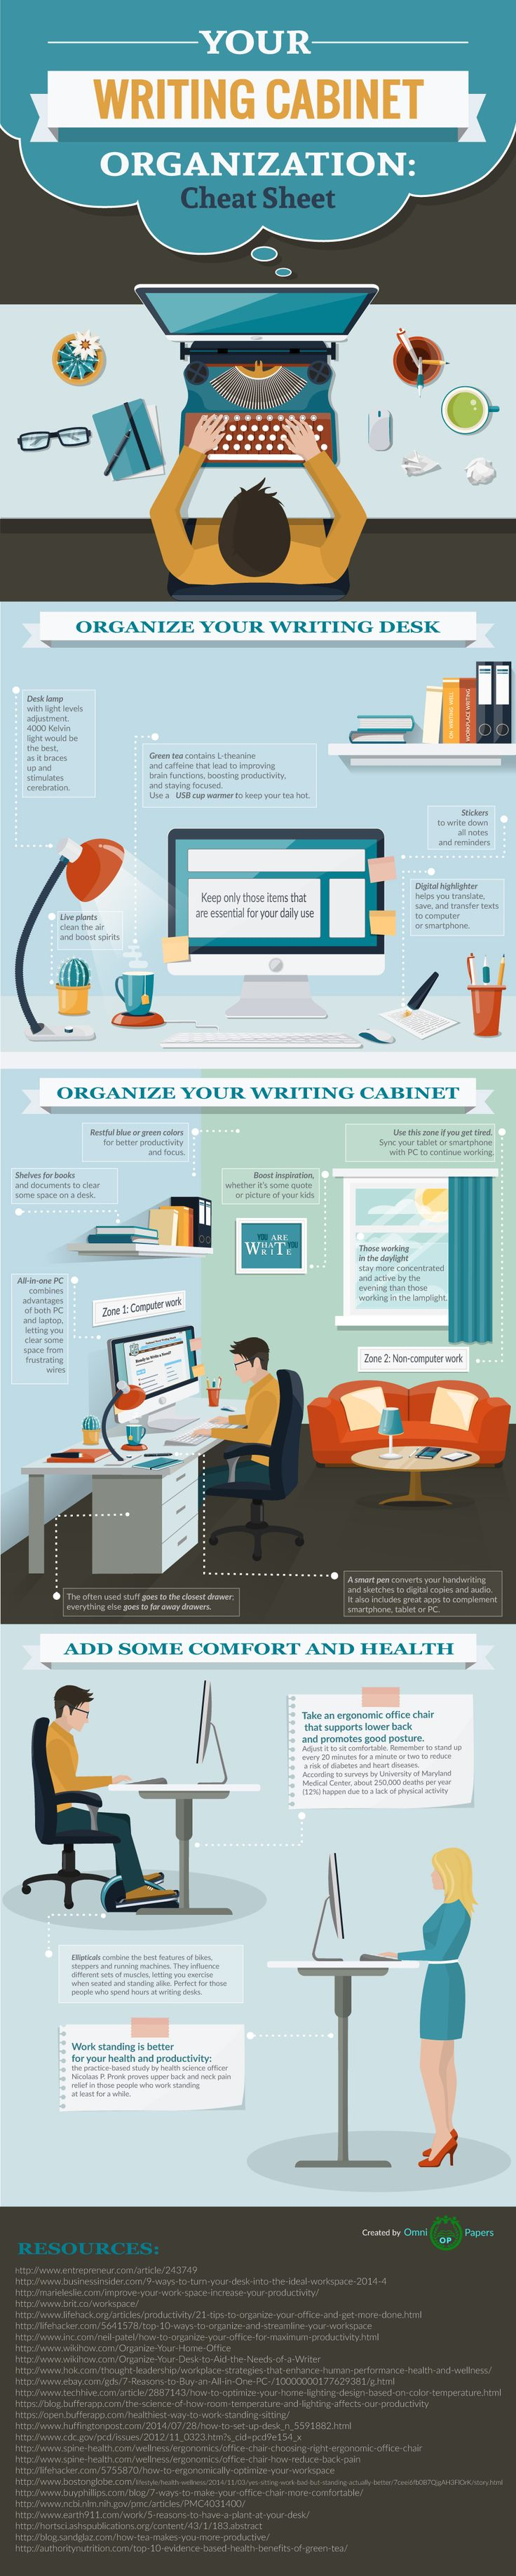 Your Writing Cabinet Organization: Cheat Sheet #infographic #Productivity